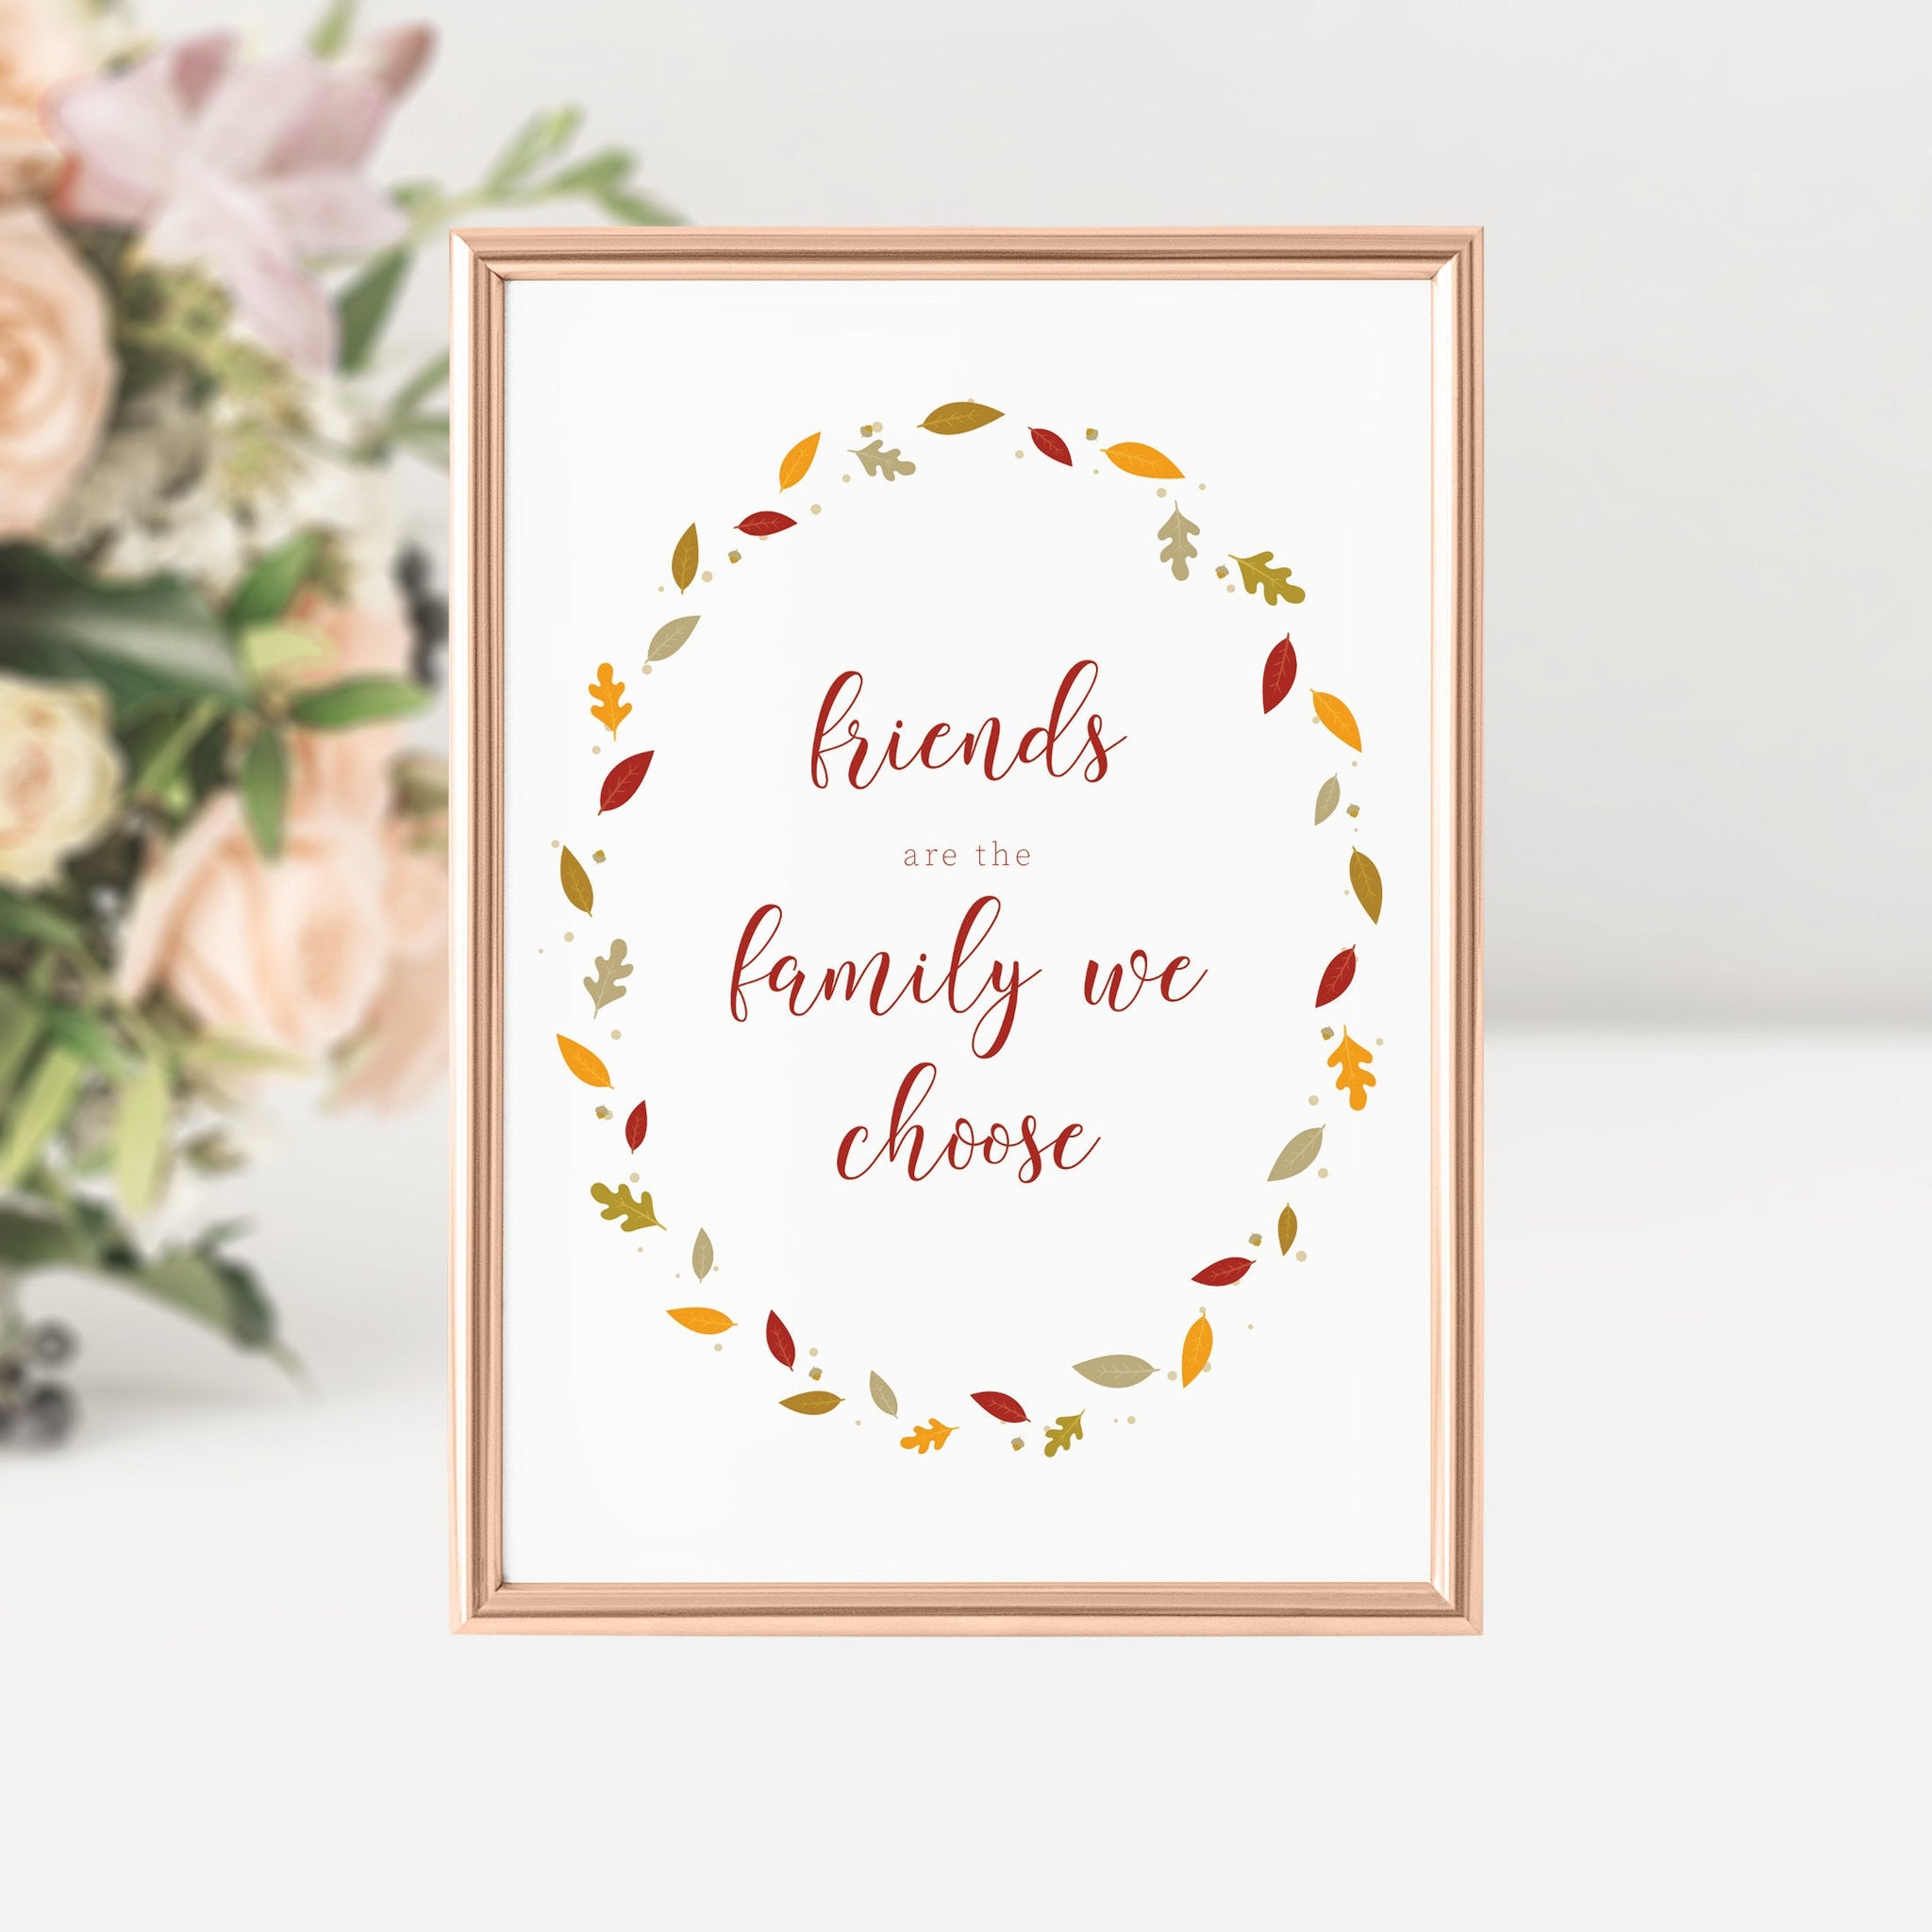 Friendsgiving Decor, Friends Are The Family We Choose, Friendsgiving Sign Printable, INSTANT DOWNLOAD - FL100 - @PlumPolkaDot